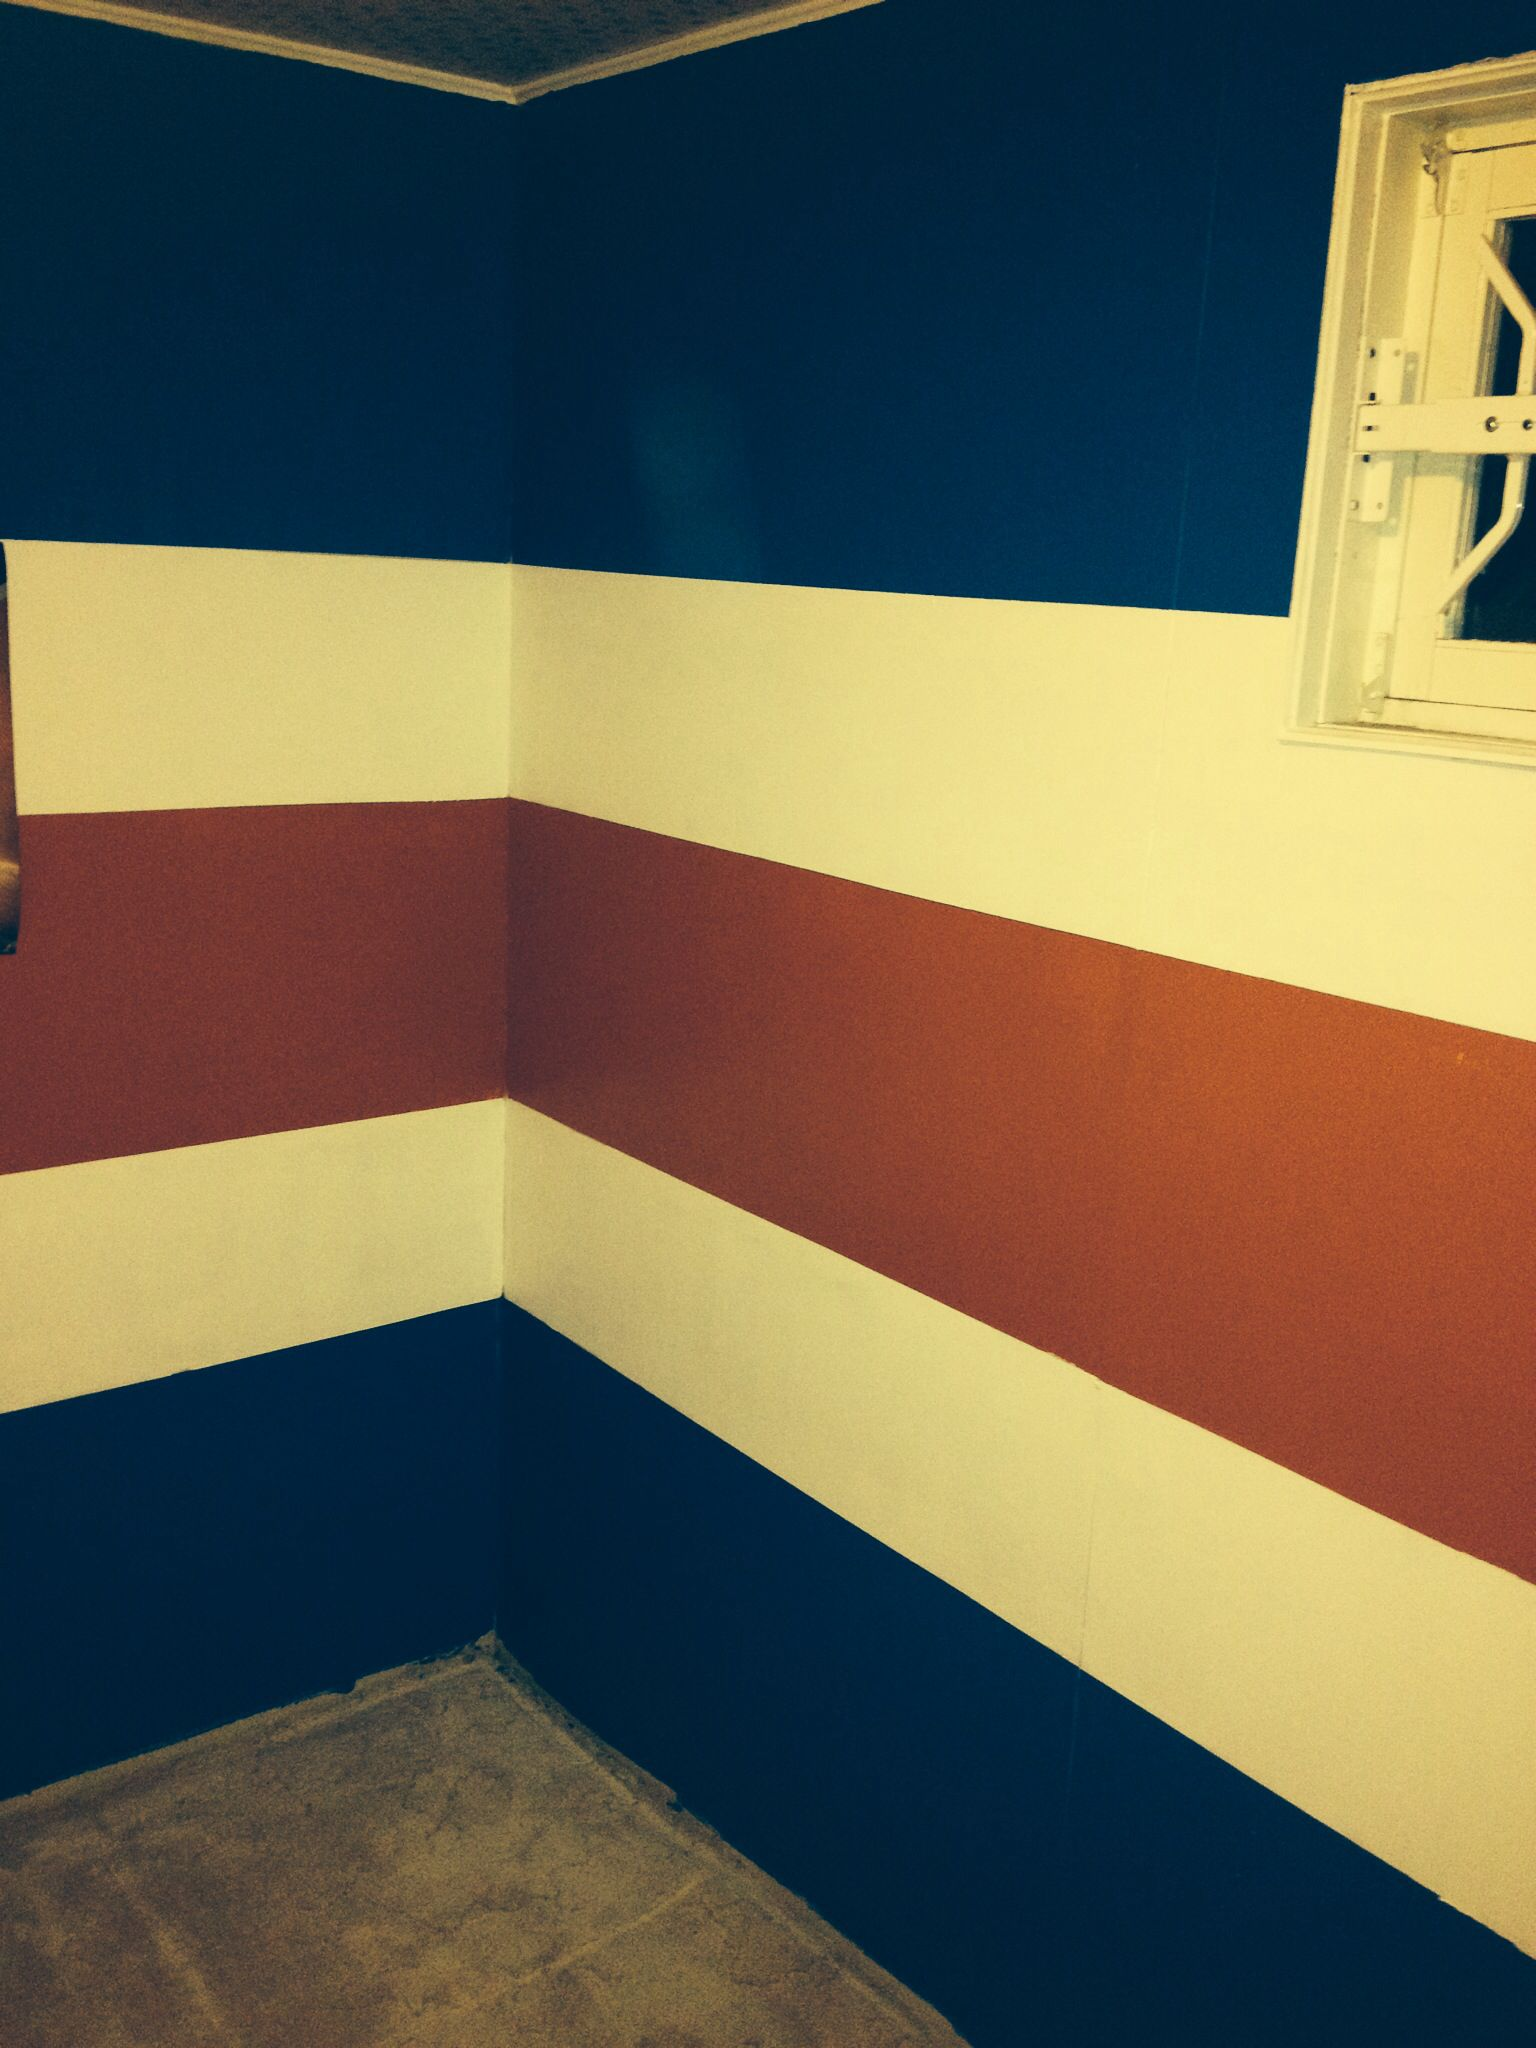 Oiler room complete :) | home | Pinterest | Room, Hockey room and ...